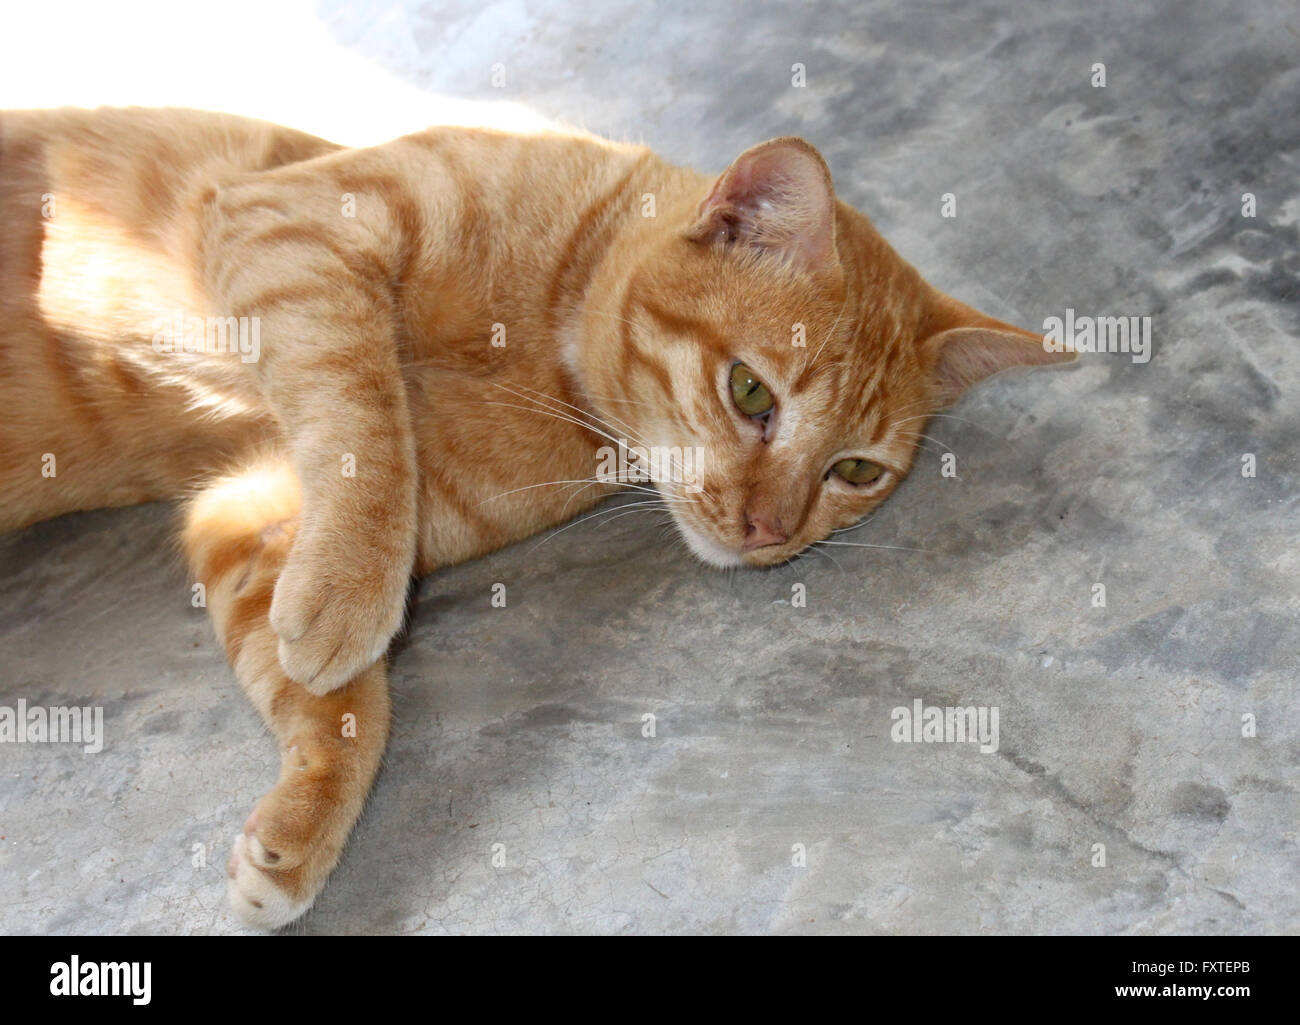 Red Cat Oriental breeds, Southeast Asia - Stock Image